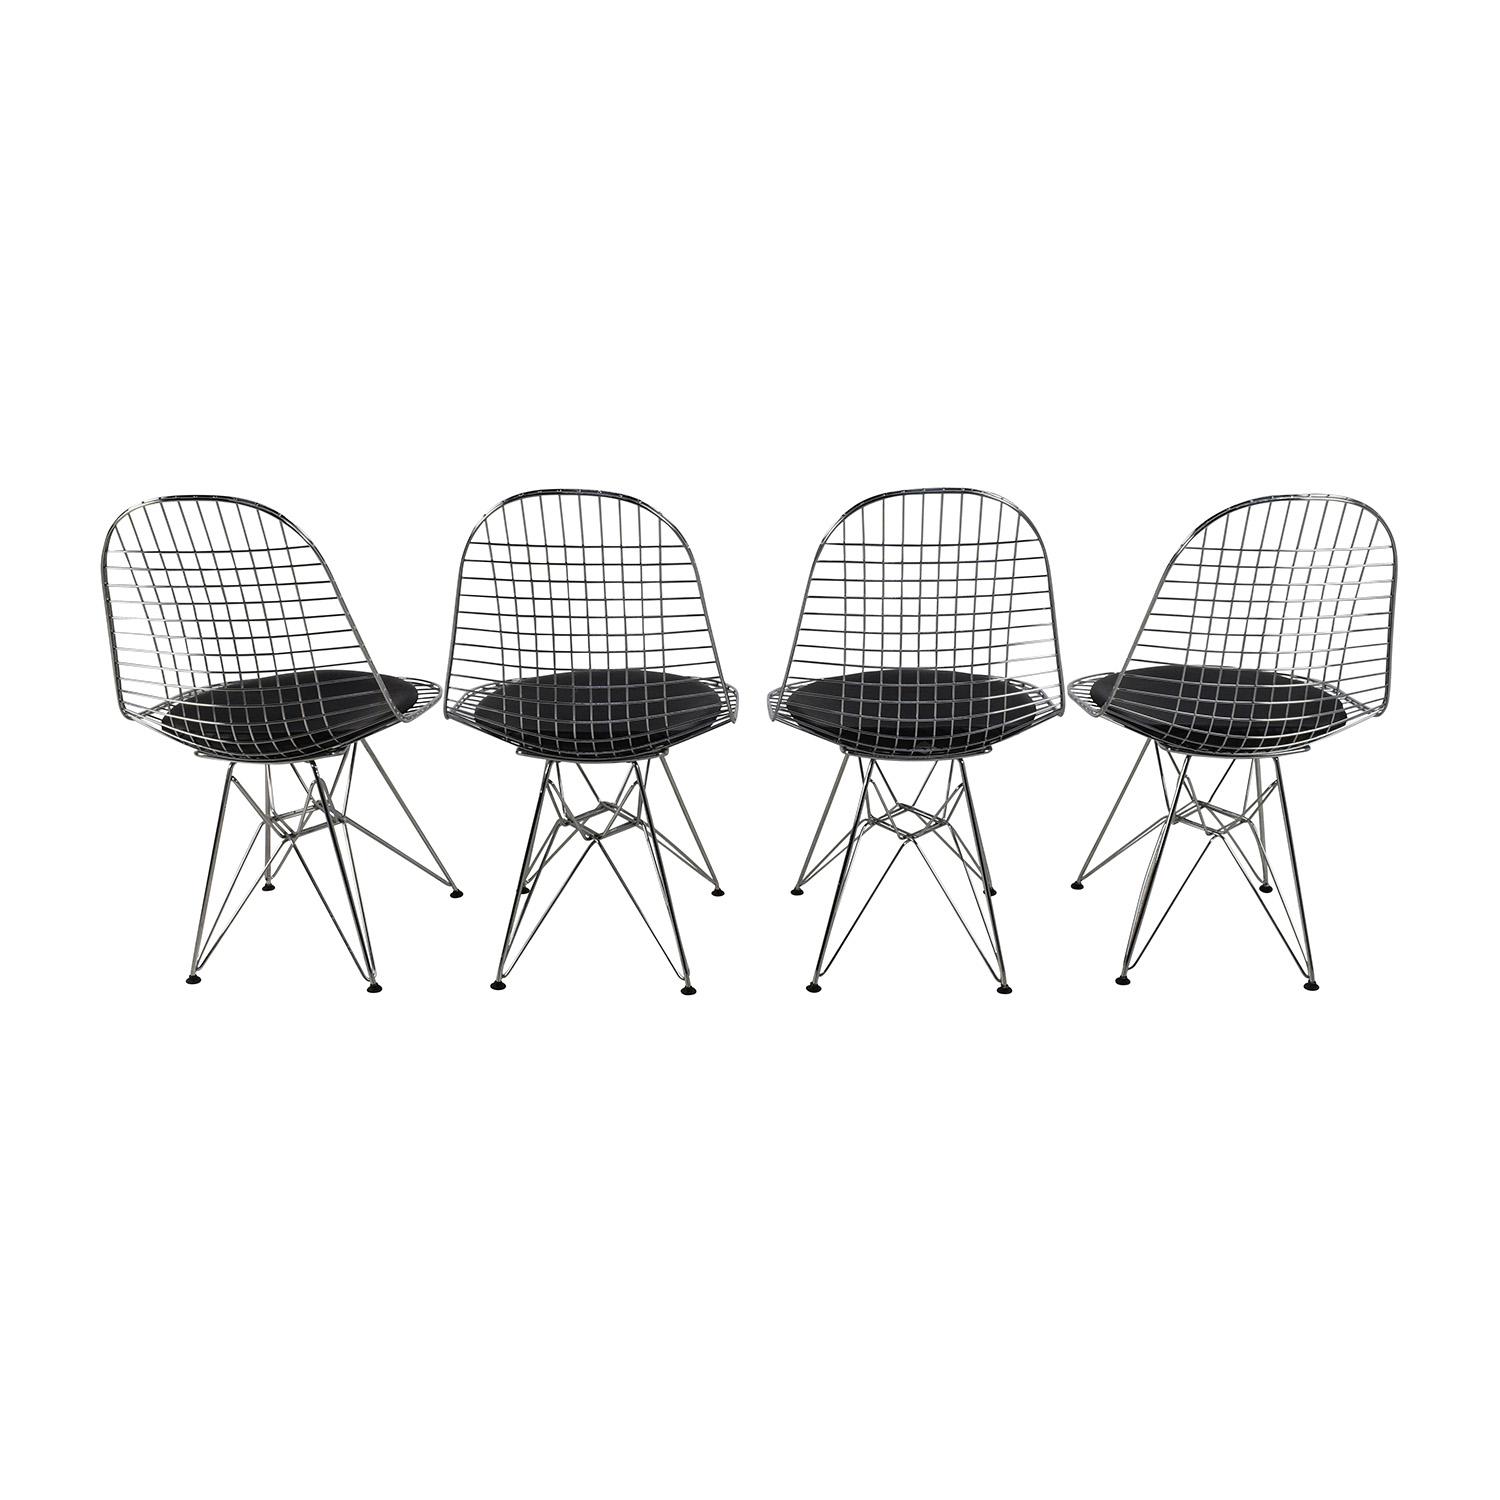 ... Herman Miller Herman Miller Eames Wire Chair Set With Black Leather  Seats Discount